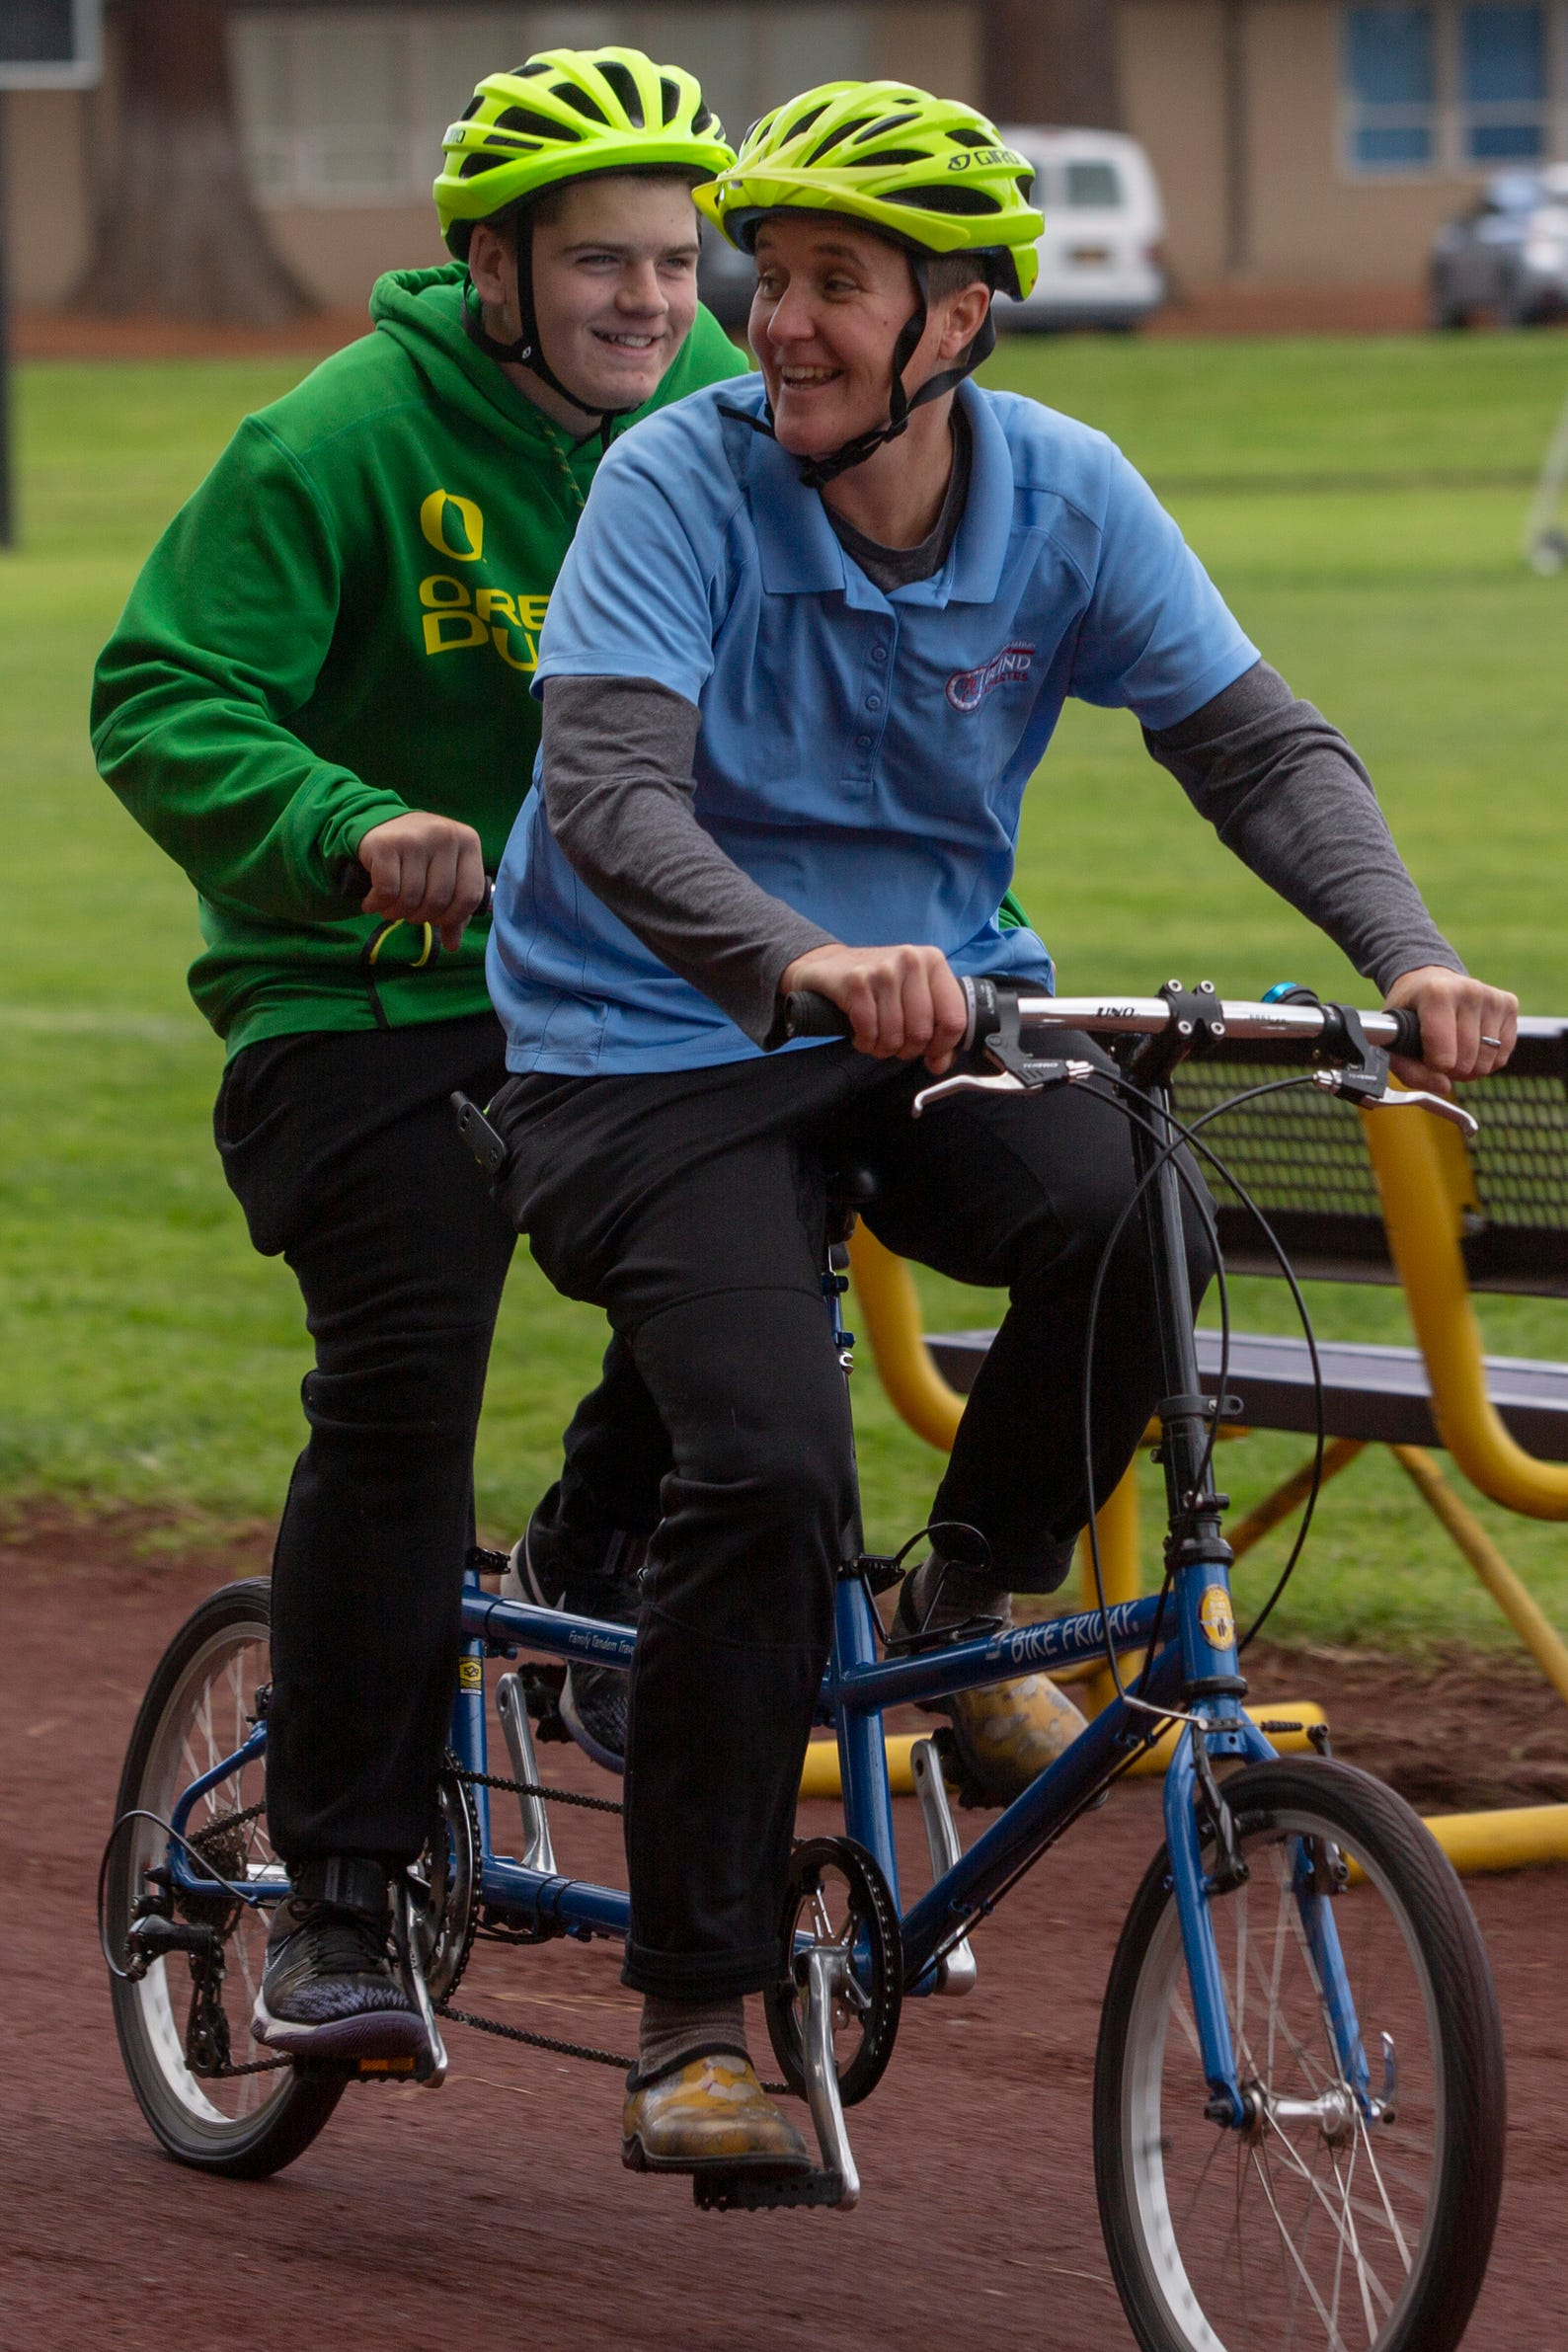 "Tandem biking instructor Megan Ahleman and tenth-grader Jaden Kemper go for a spin at the Oregon School for the Deaf in Salem, Oct. 4, 2019. NWABA, the Northwest Association for Blind Athletes, hosted a ""Paralympic experience"" for students with visual impairments in the state. After the Oregon School for the Blind closed in 2009, many visually impaired students and their families lost access to state-funded resources, like sports programs. The BVIS (Blind Visually Impaired Student) Fund gives programs like NWABA funds to enhance the lives of low vision/blind children across the state."